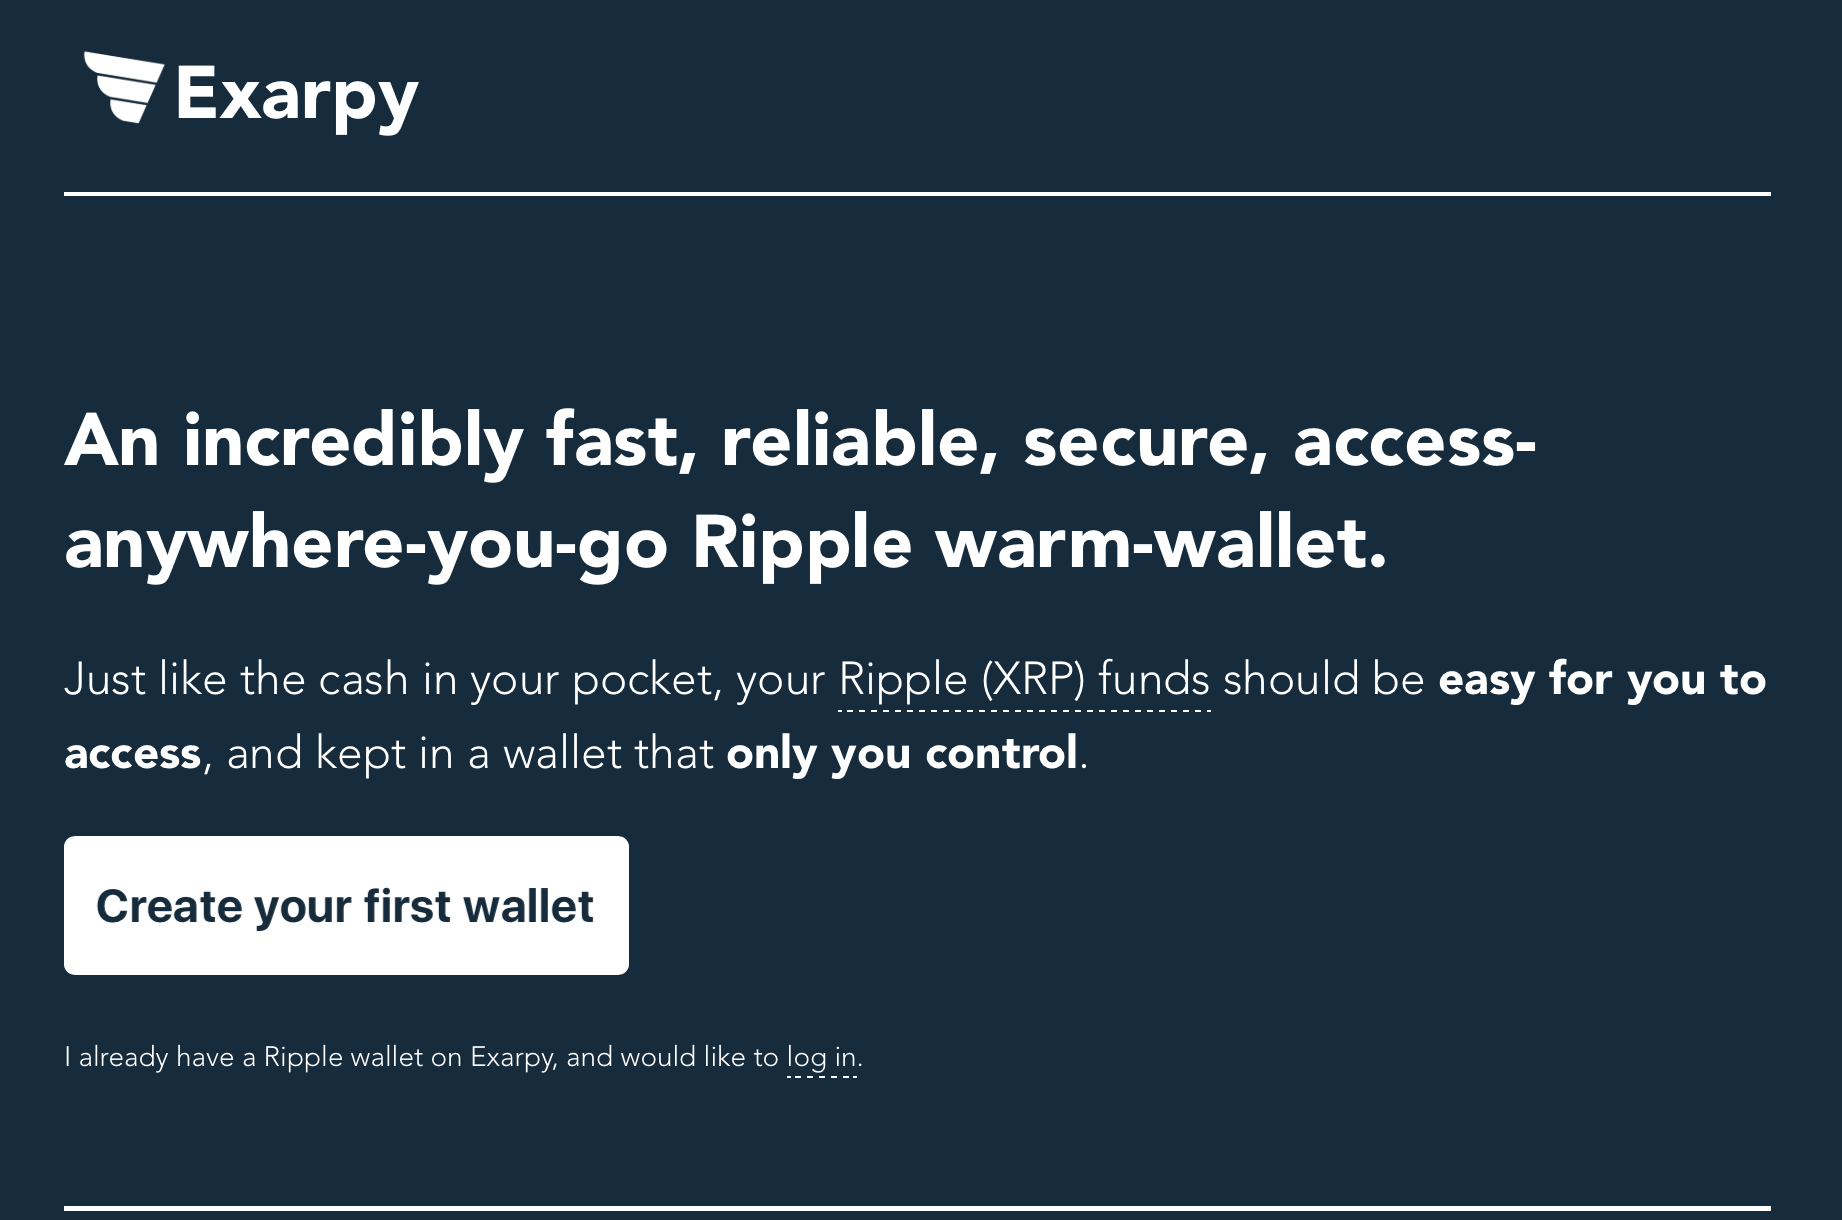 exarpay wallet review